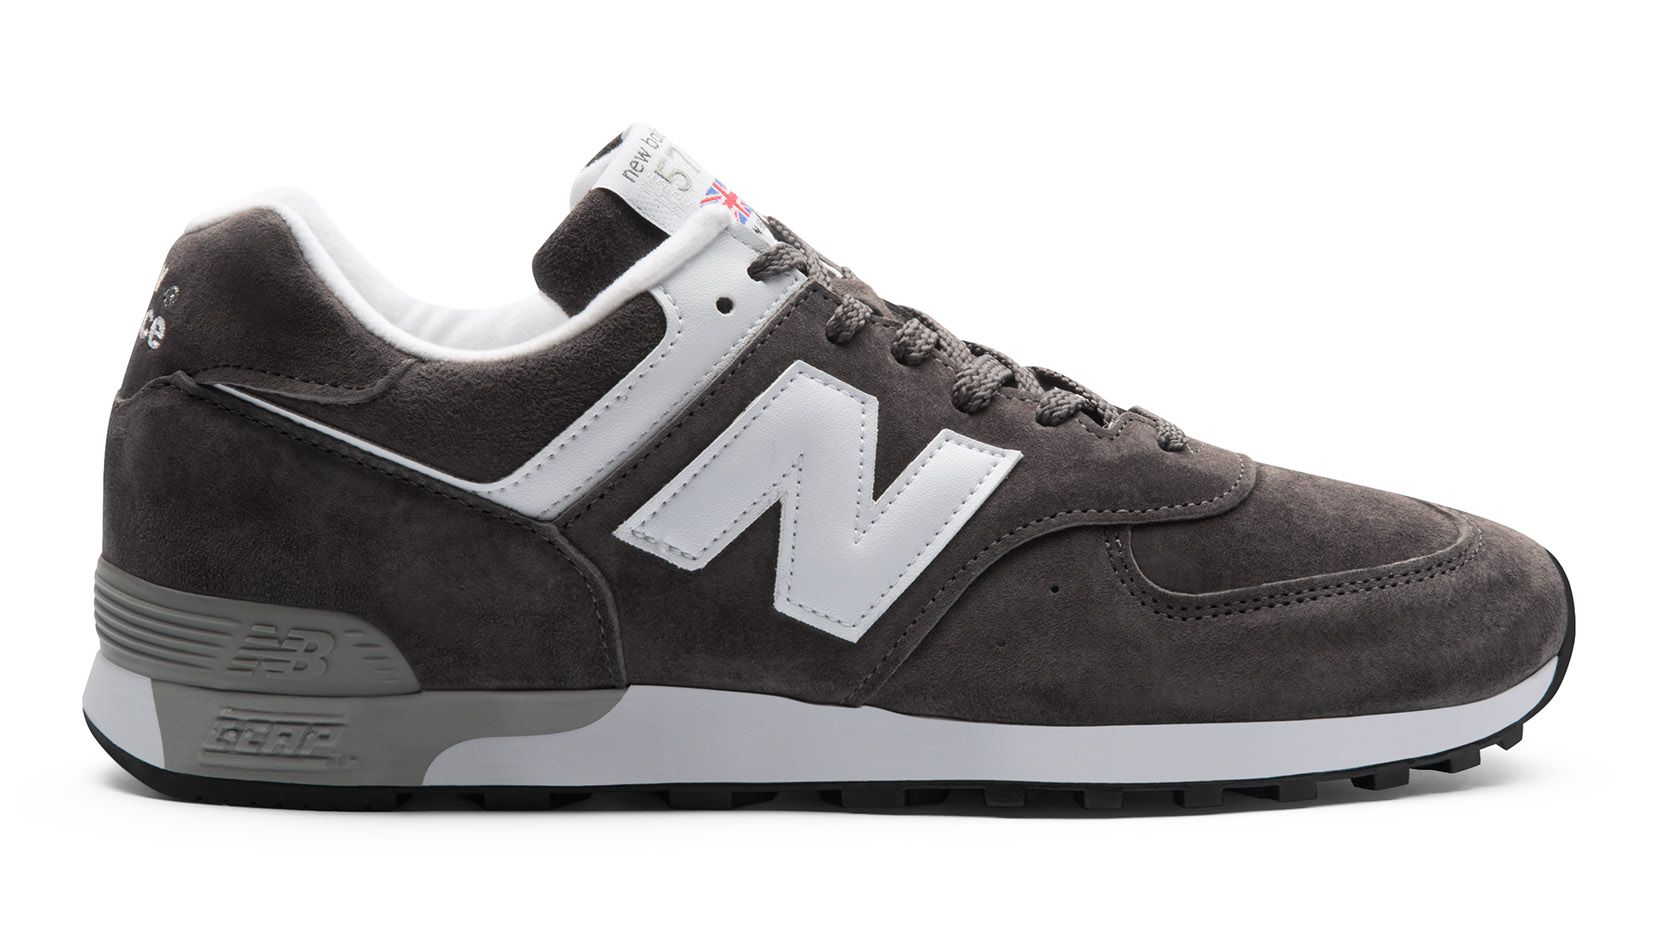 576 Made in UK new balance m990 made in usa